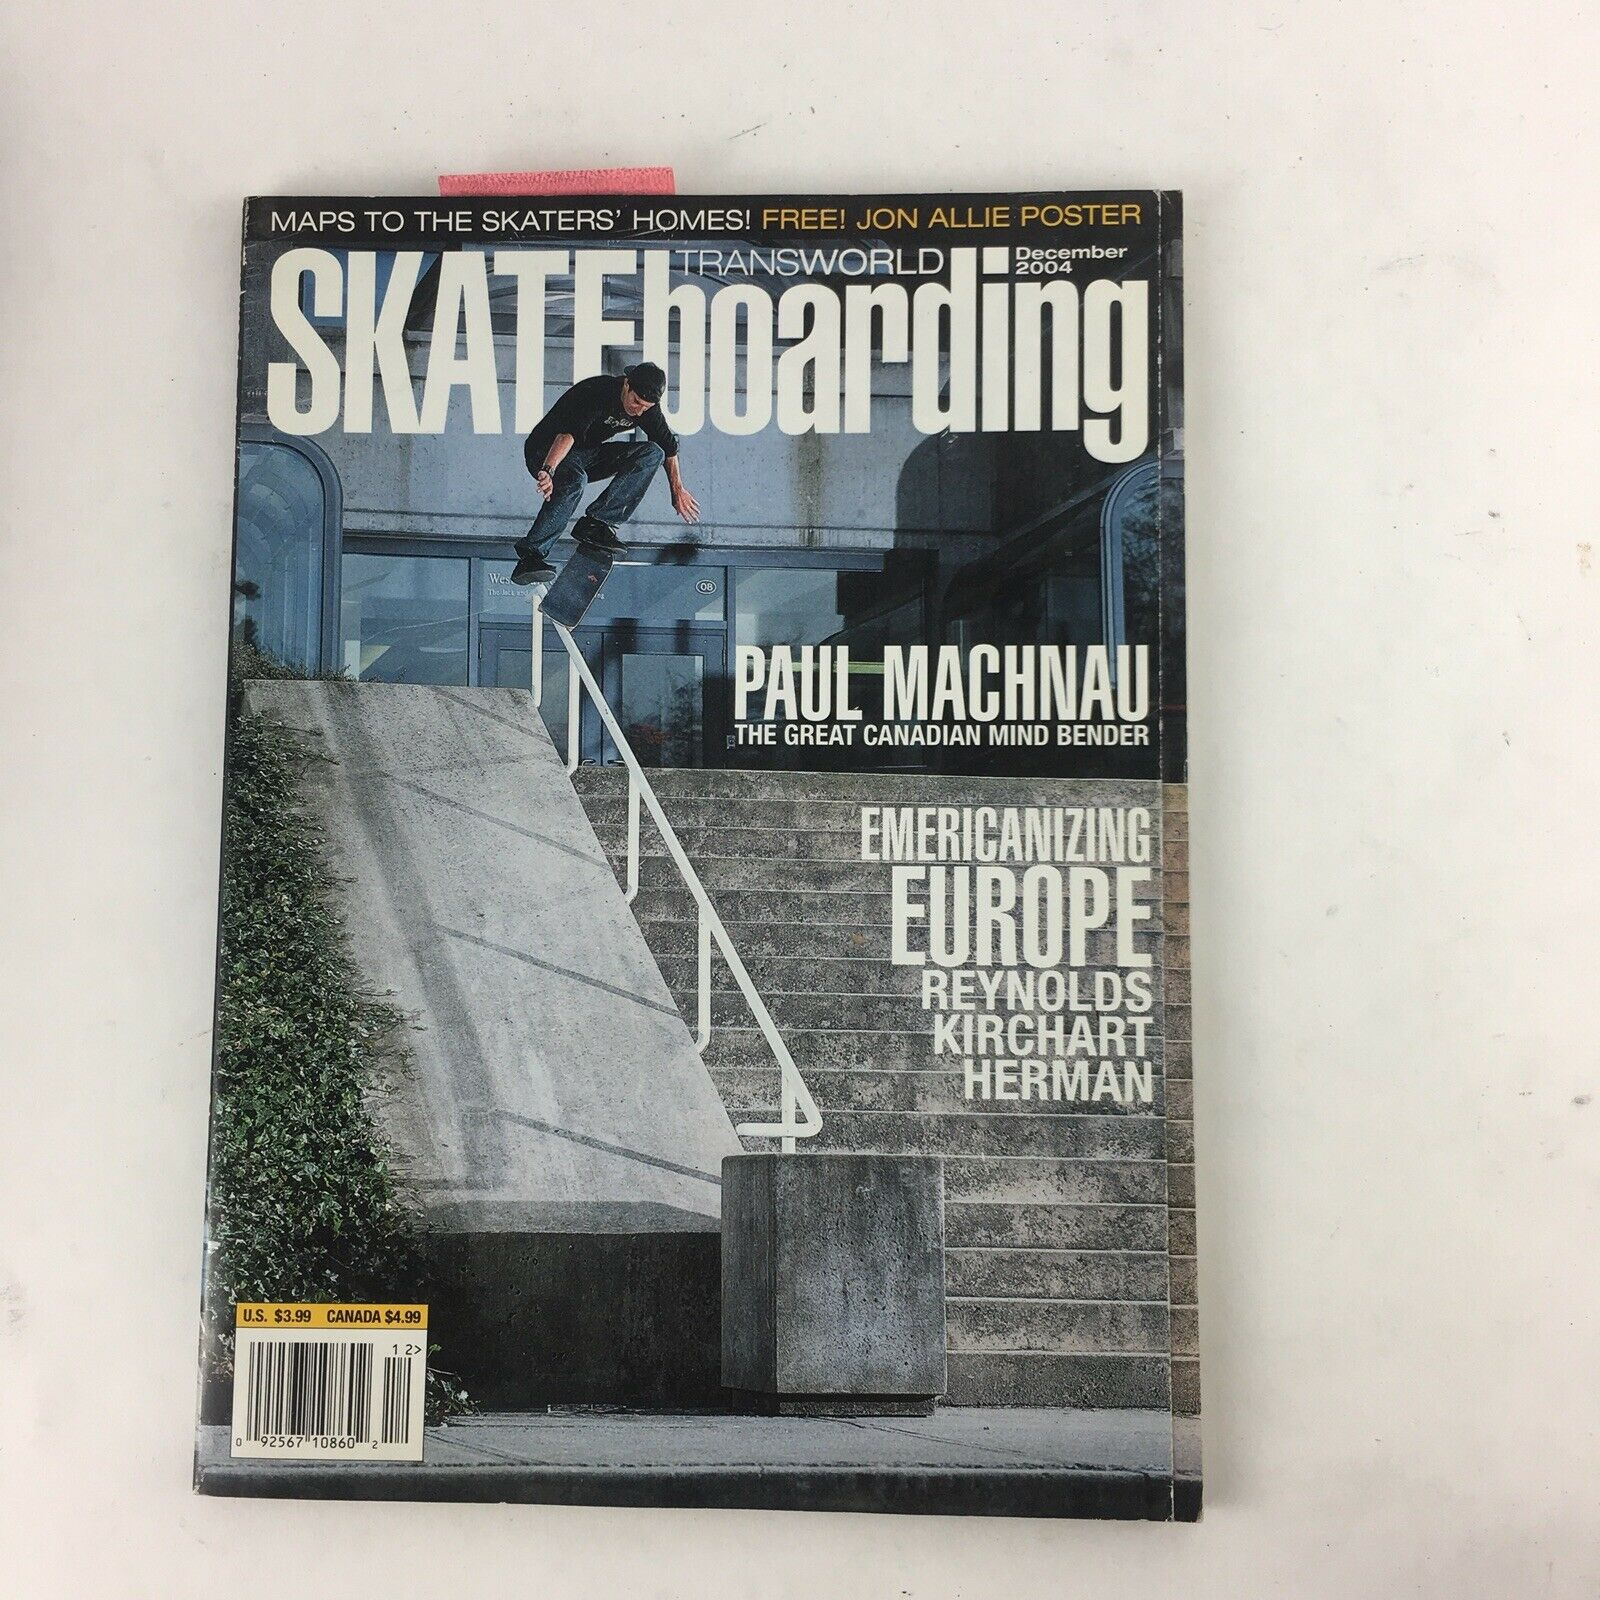 Rare Vintage Transworld s boarding  Magazine Lot of 6 Issues 2005 Volume 22  incredible discounts